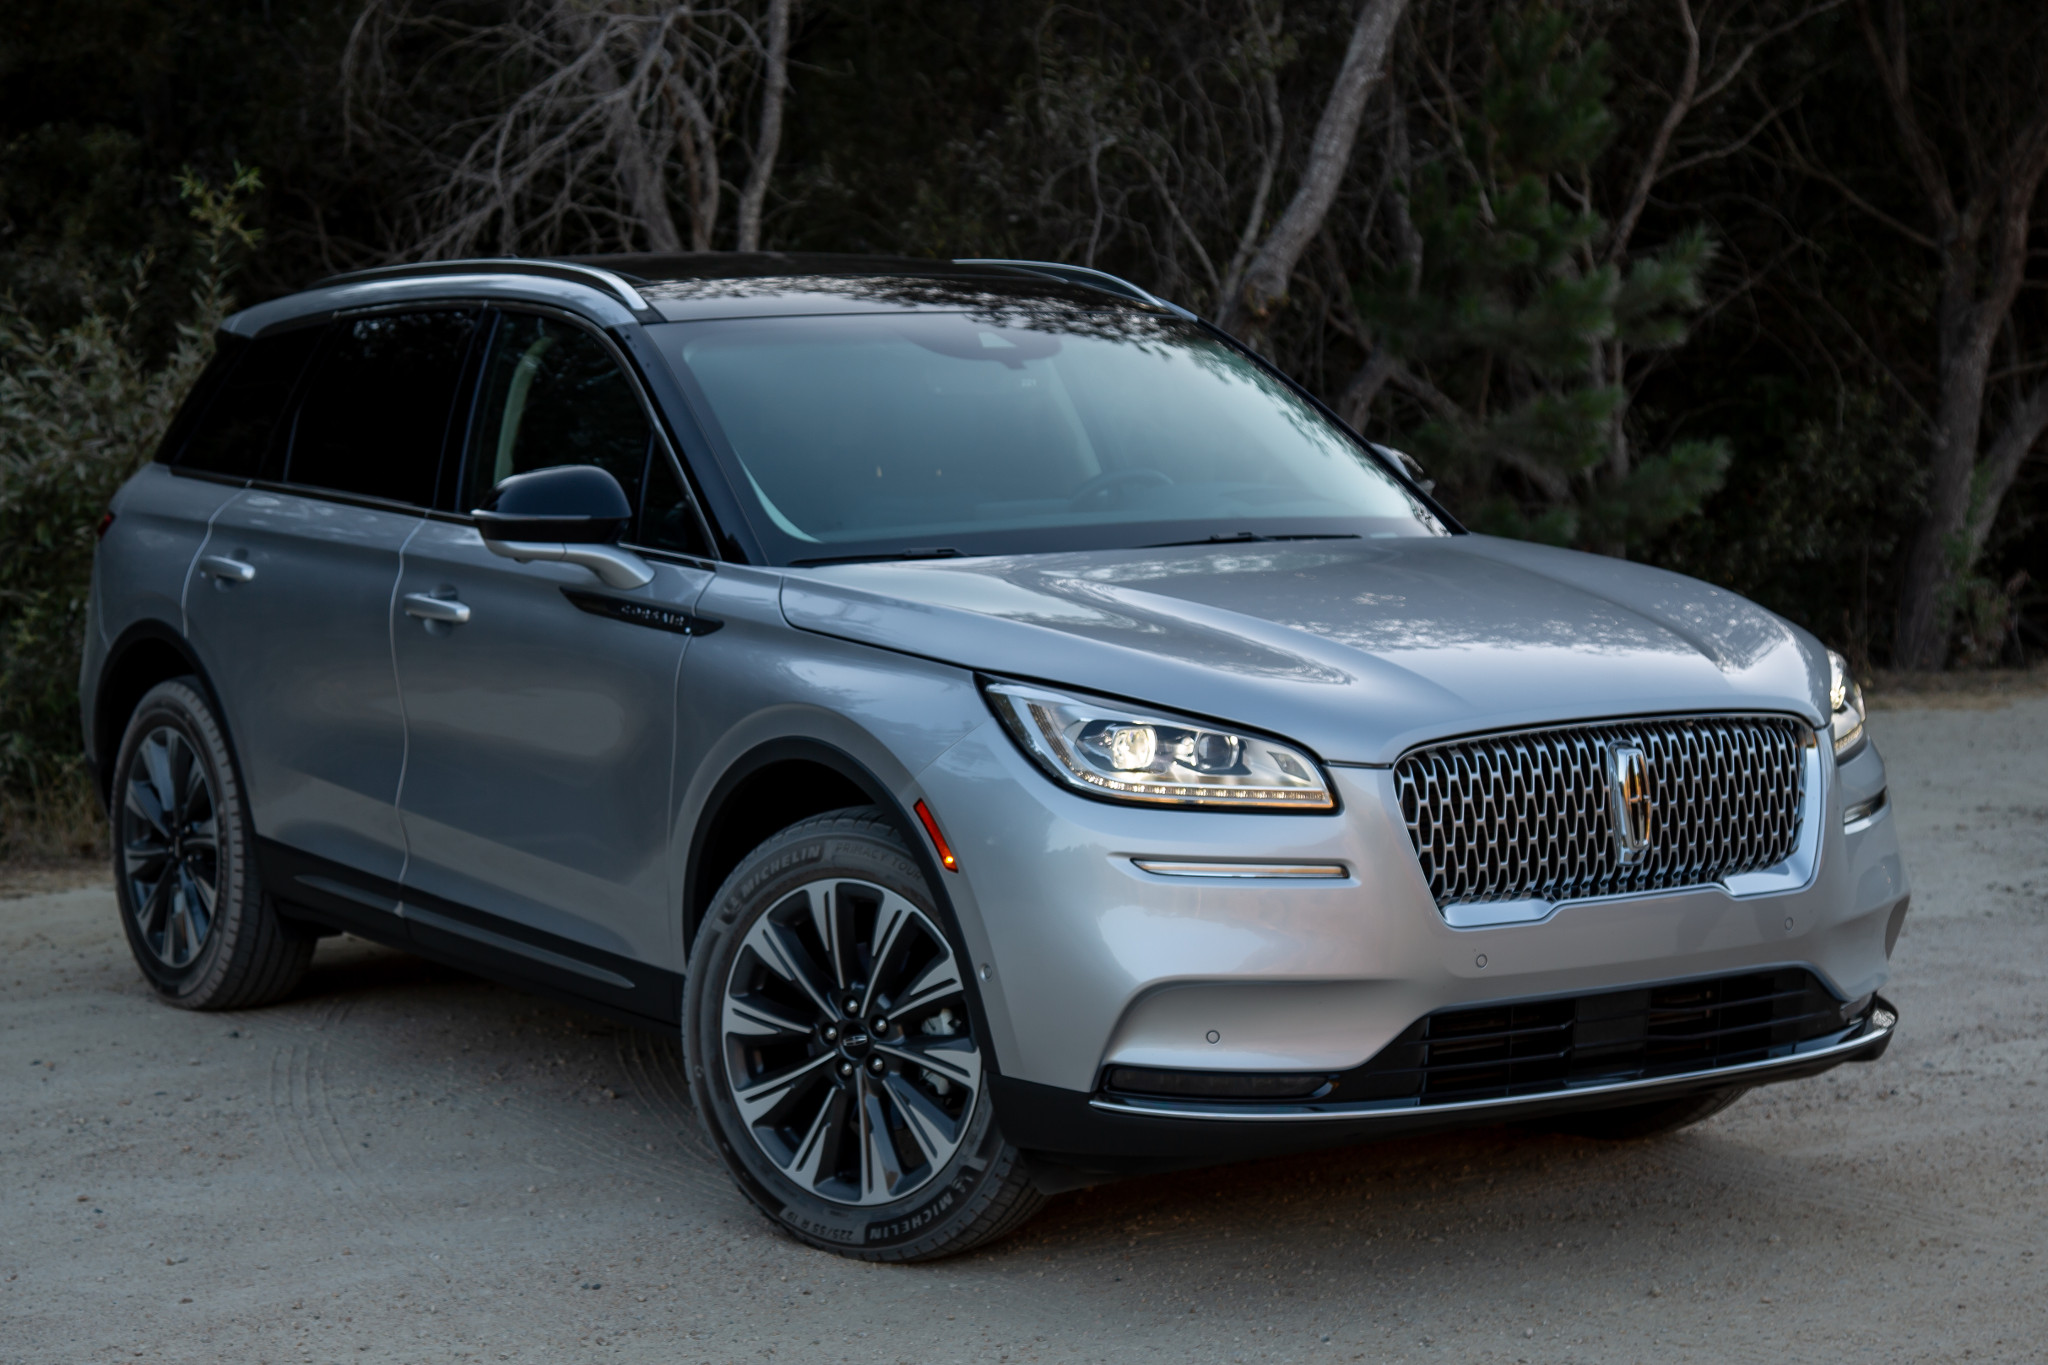 2020 Lincoln Corsair:  8 Things We Like (and 3 Not So Much)